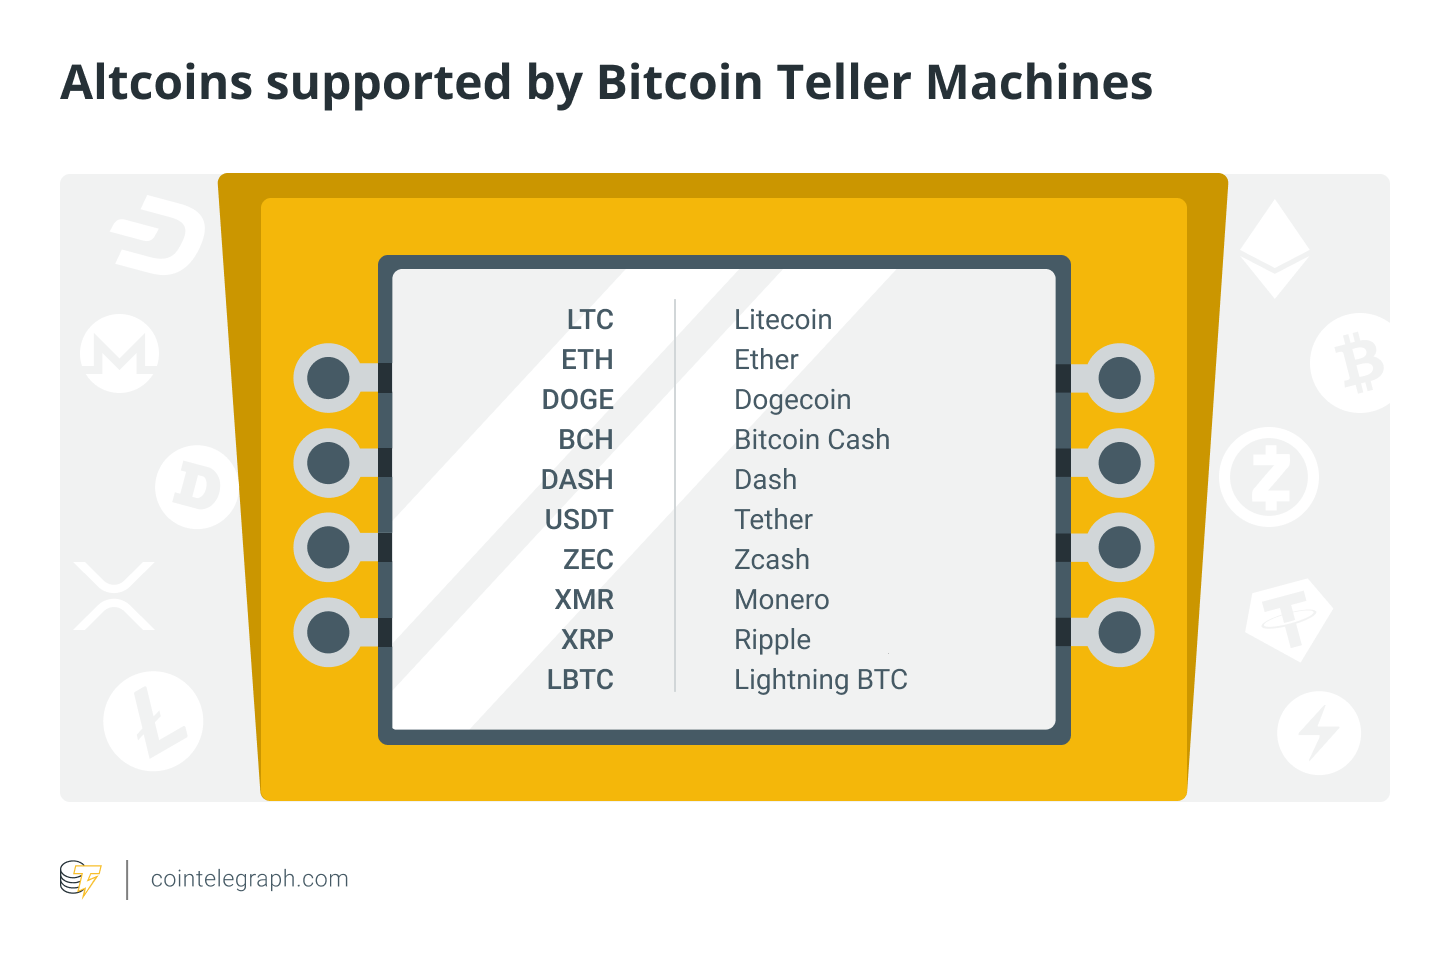 Altcoins supported by Bitcoin teller machines